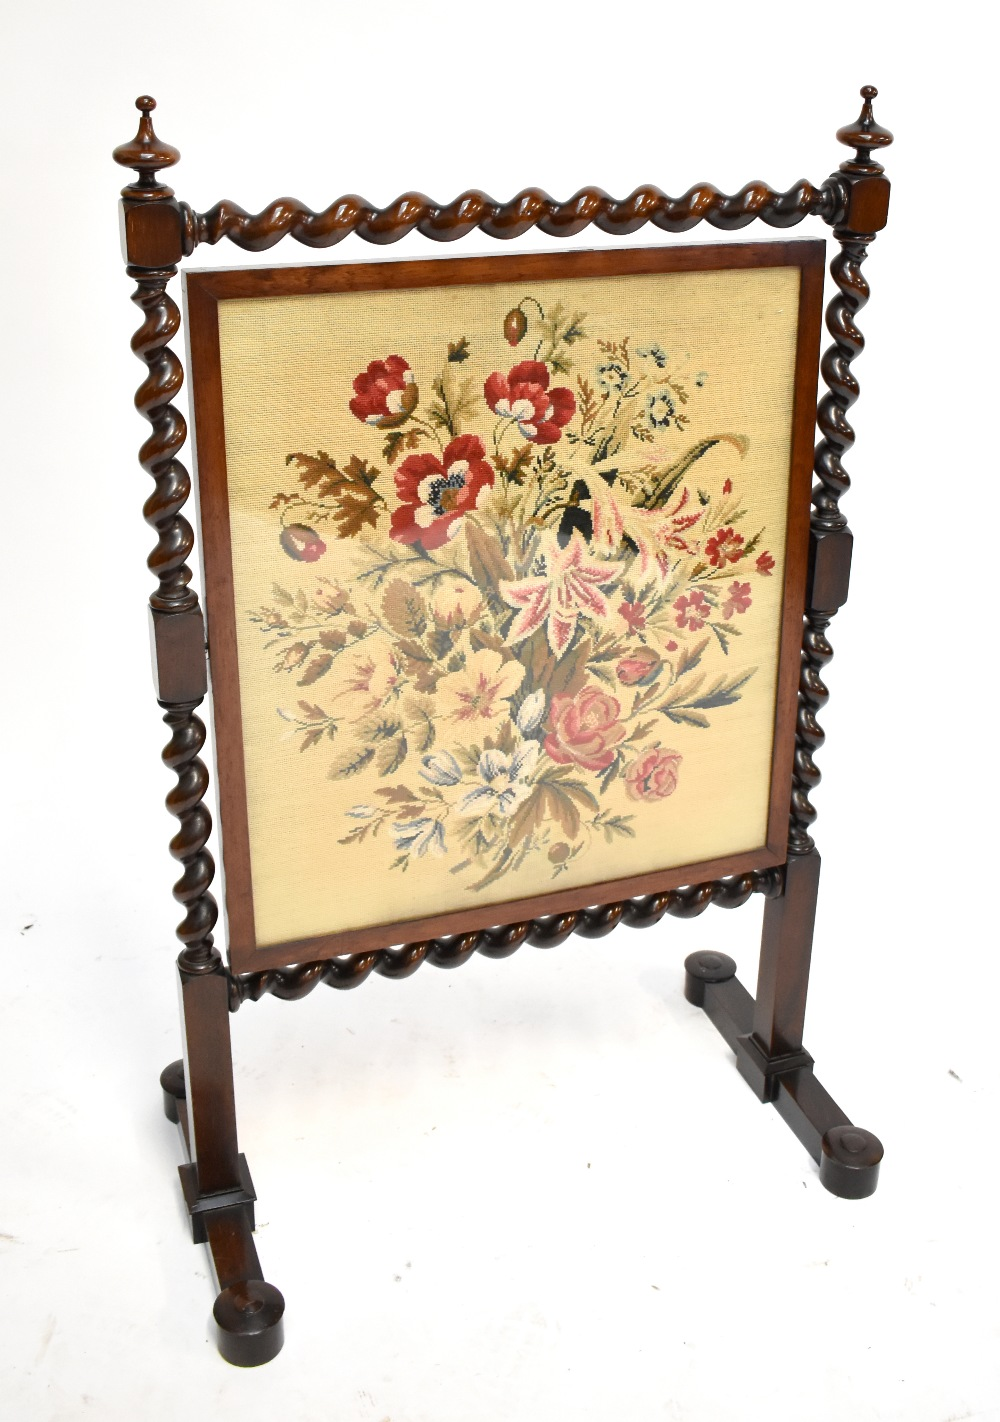 Lot 1846 - A 19th century mahogany and rosewood framed fire screen with rotating tapestry and silk panel,